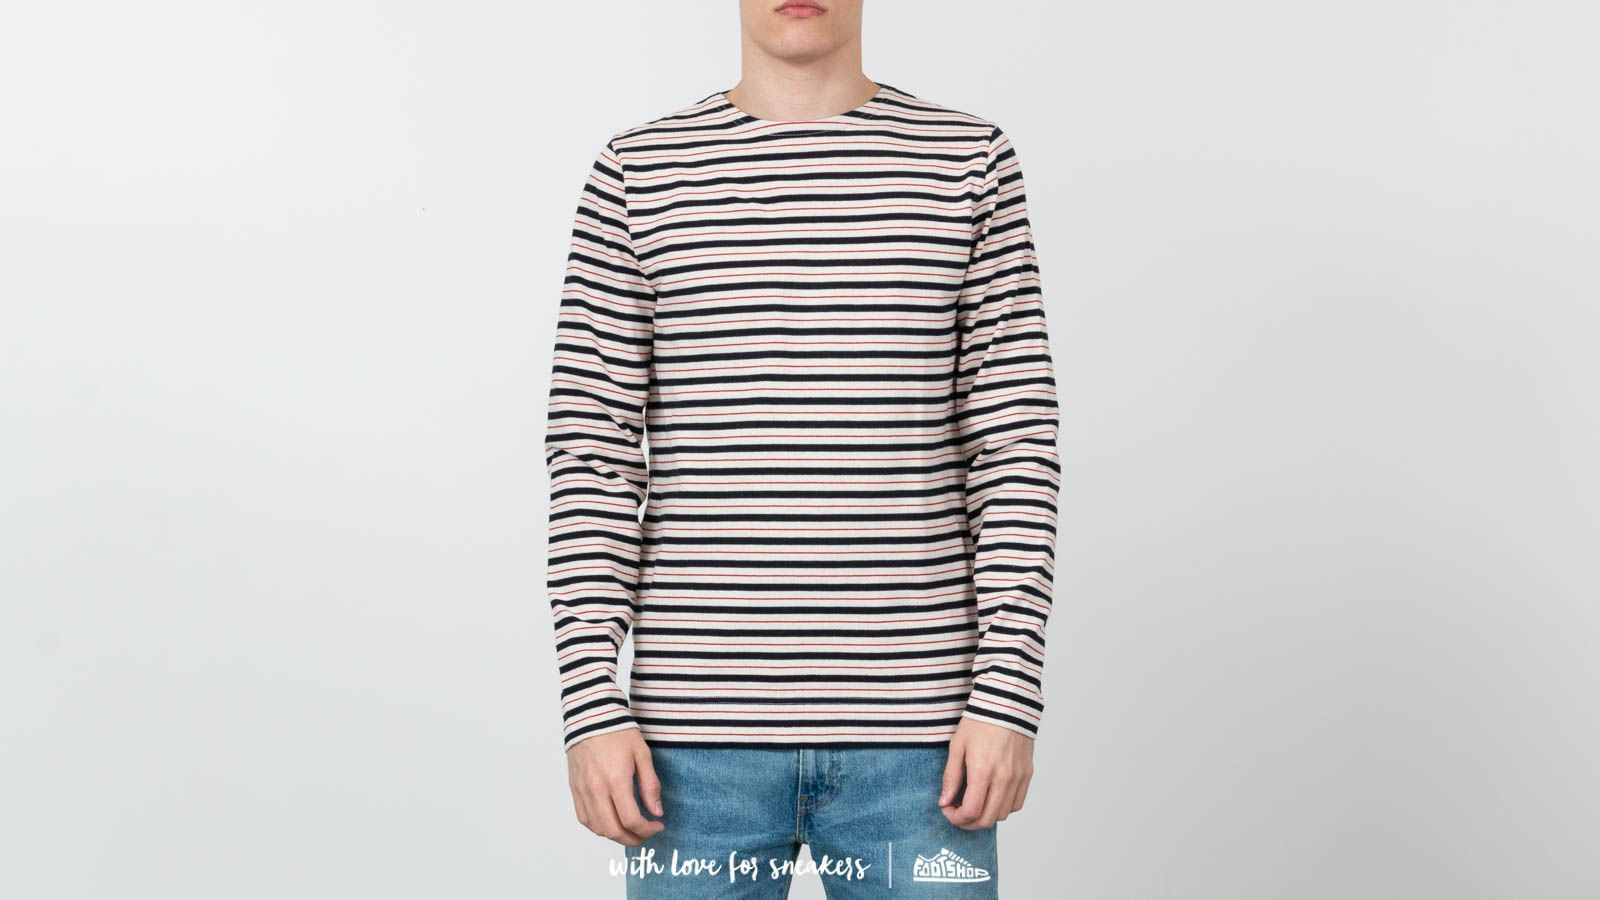 Norse Projects Godtfred Classic Compact Long Sleeve Tee